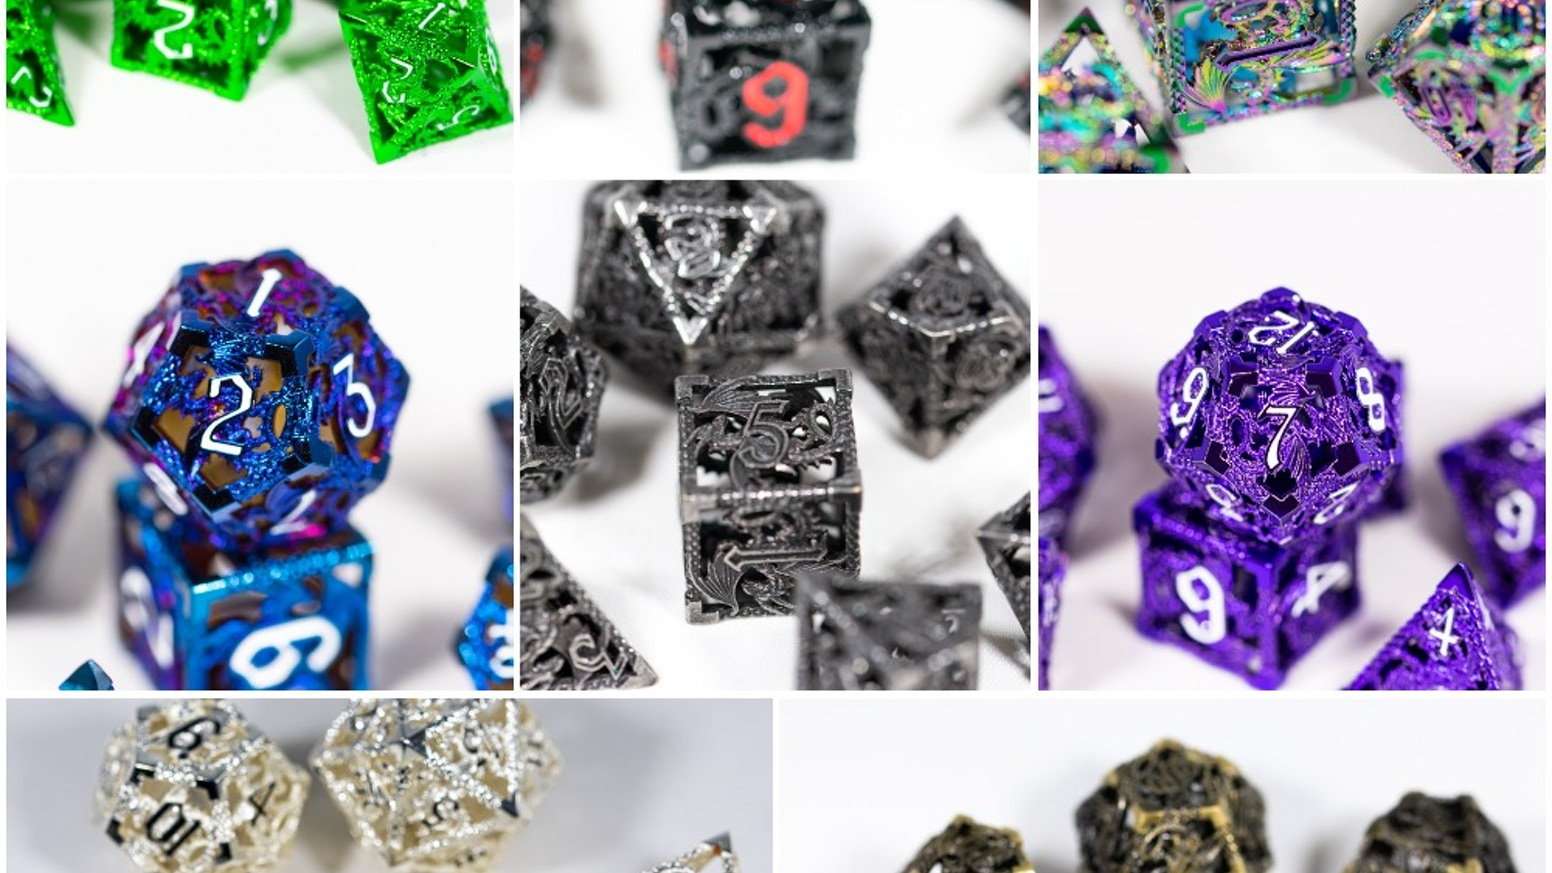 High End Hollow Metal RPG Gaming Dice with Flowing Dragons Ready for Your Next DND Campaign!